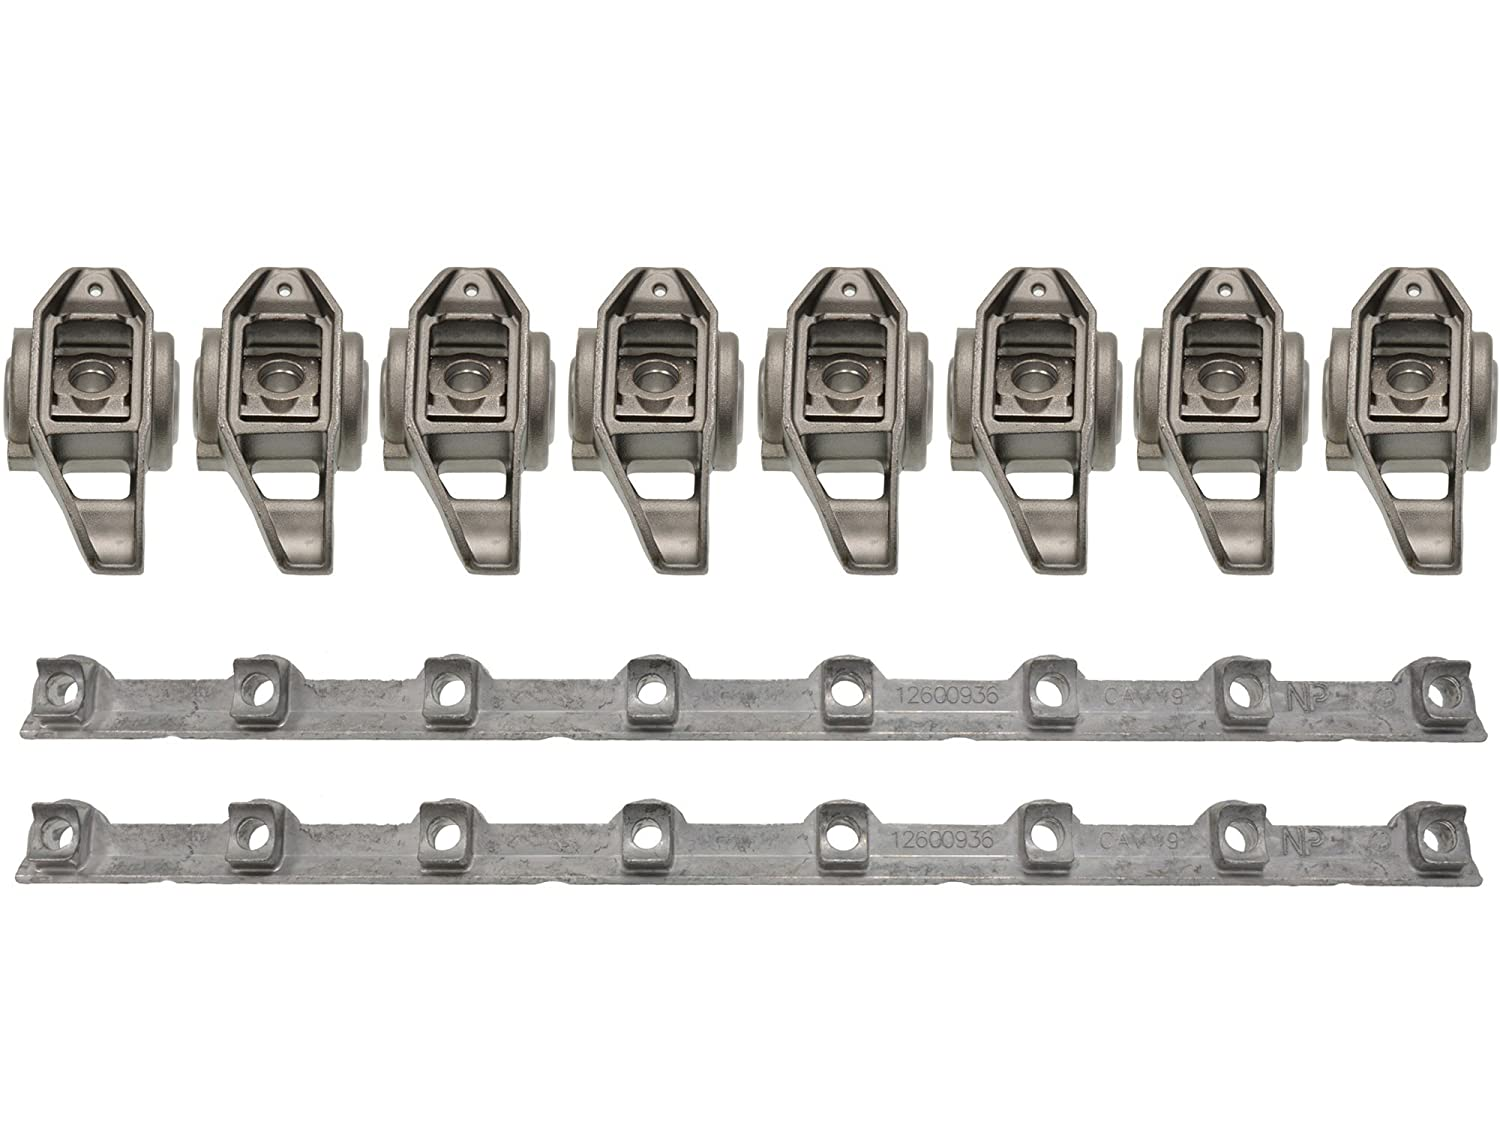 LS3 L76 L99 Head Rocker Arm Conversion Kit Converts LS1 LS2 LQ4 LQ9 5.3 5.7 6.0 Michigan Motorsports